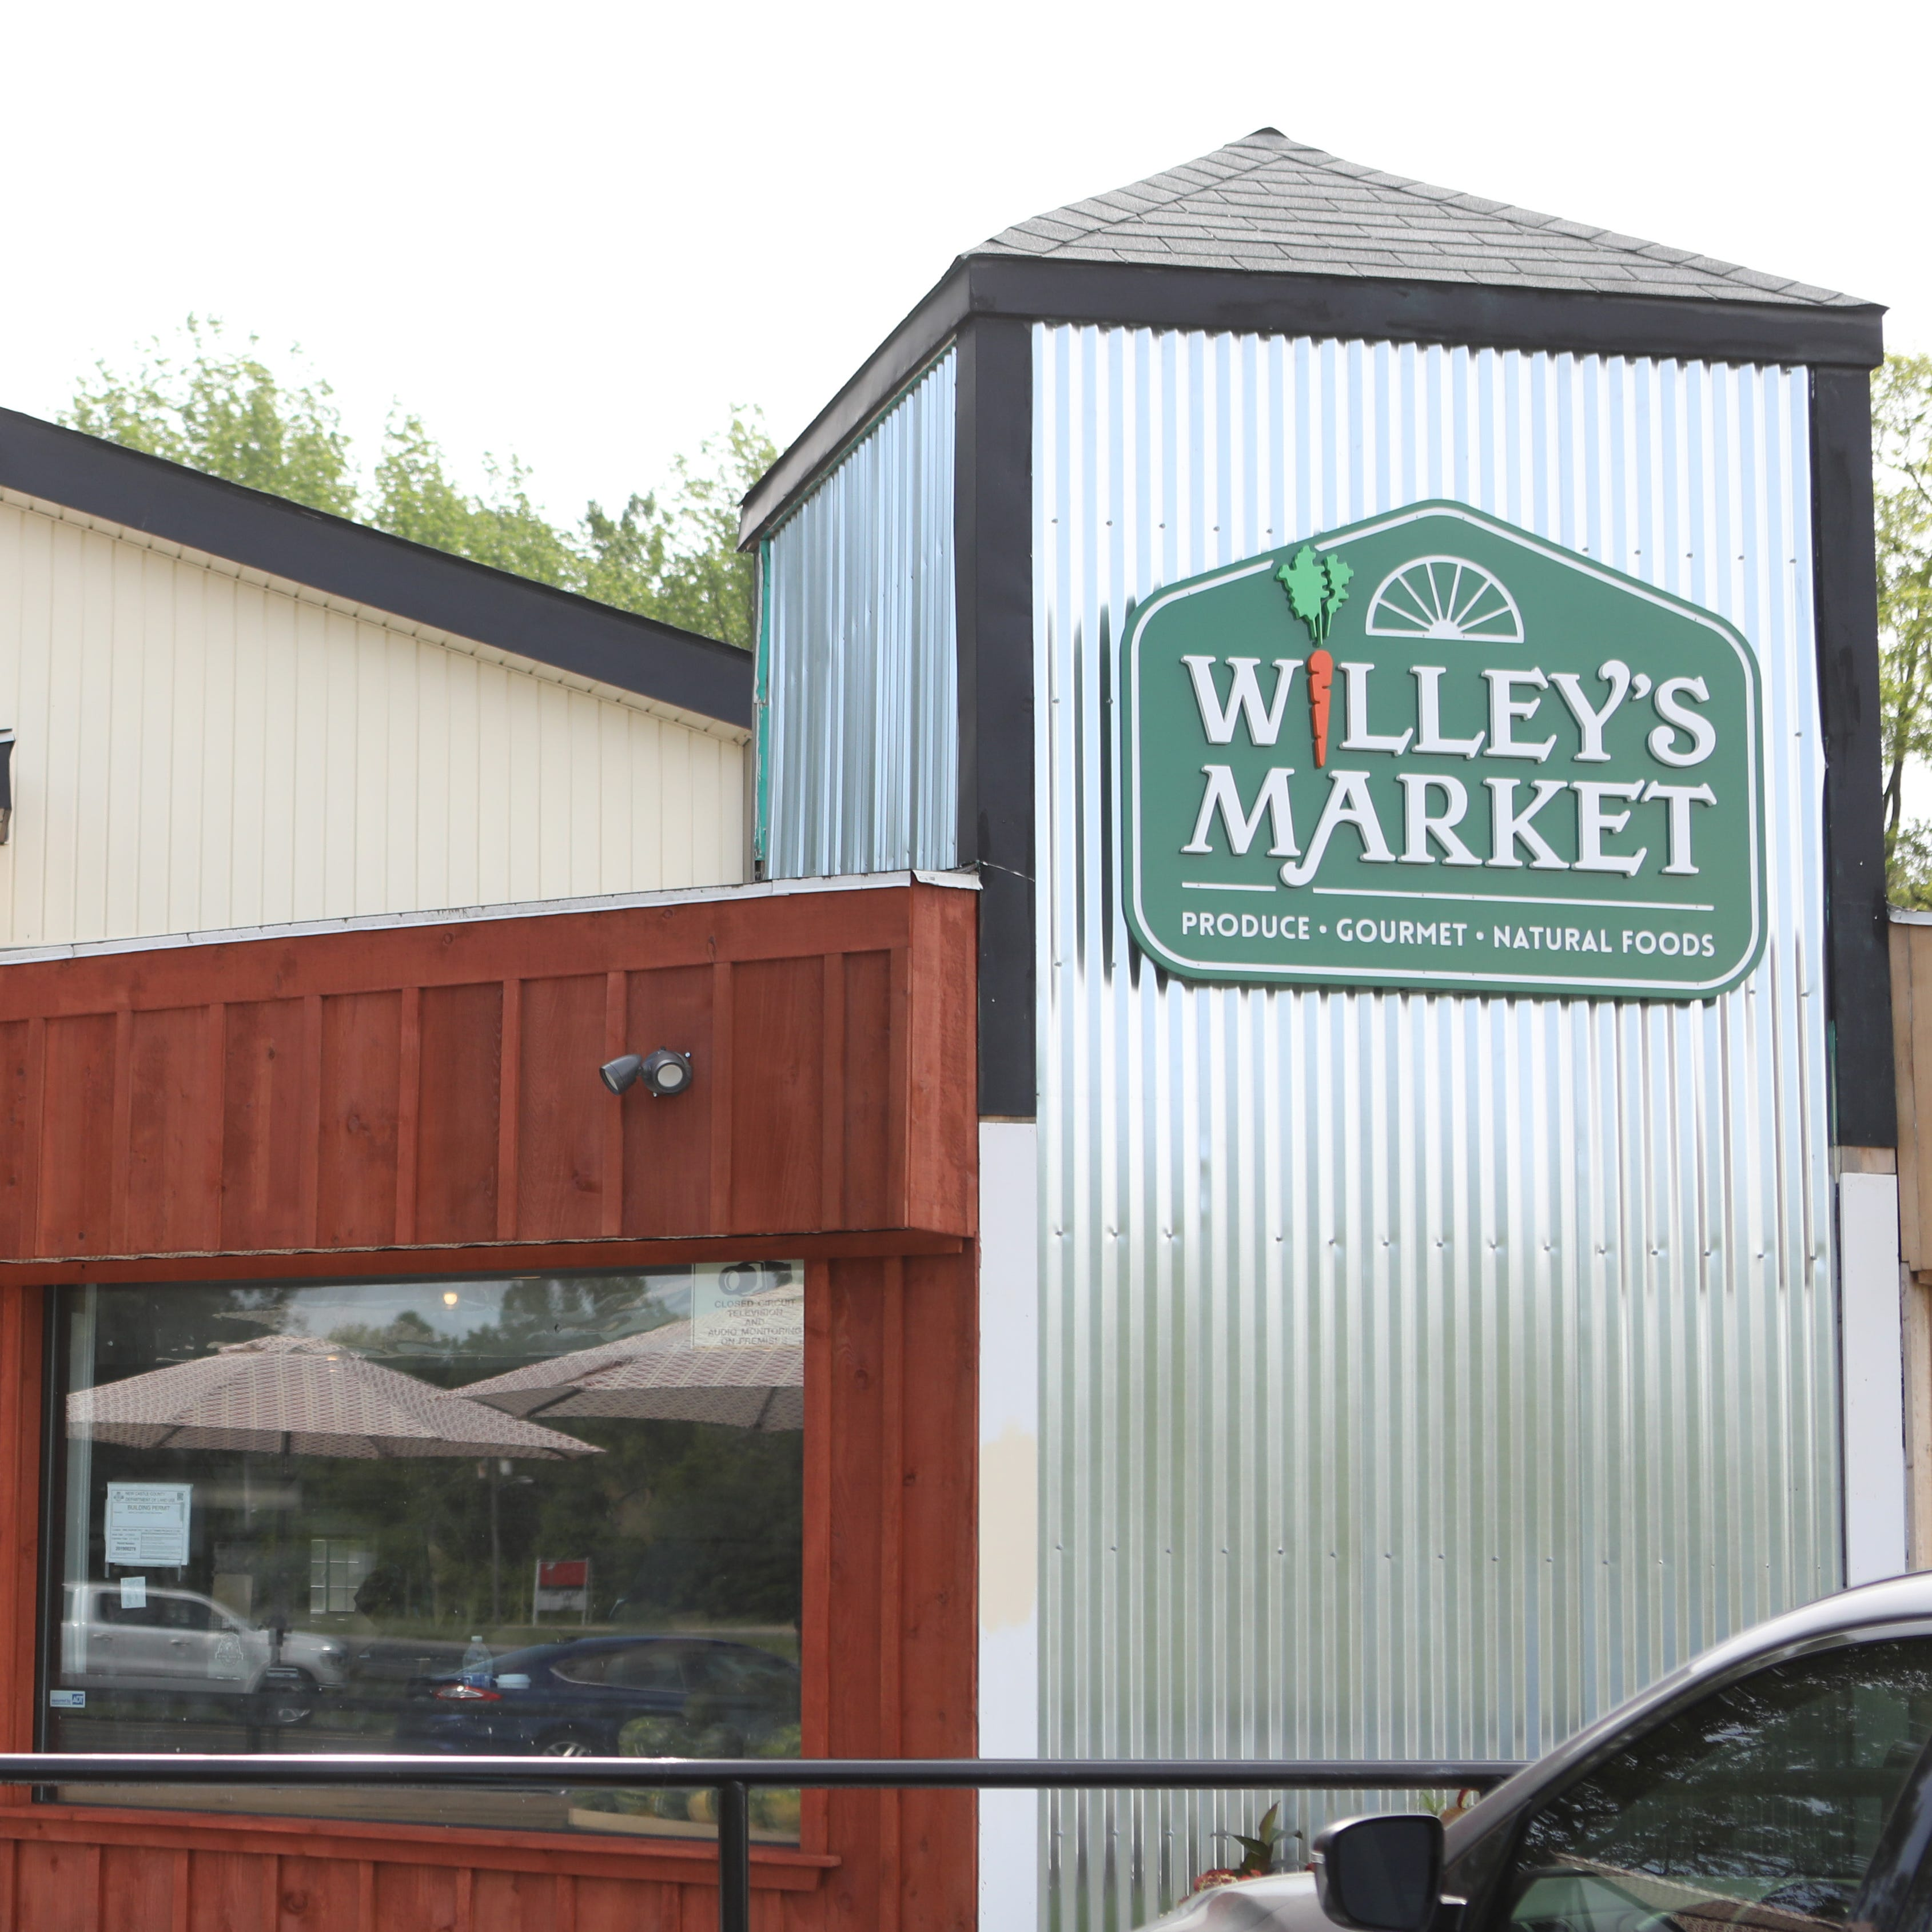 Willey Farms opens new market just in time for Memorial Day weekend